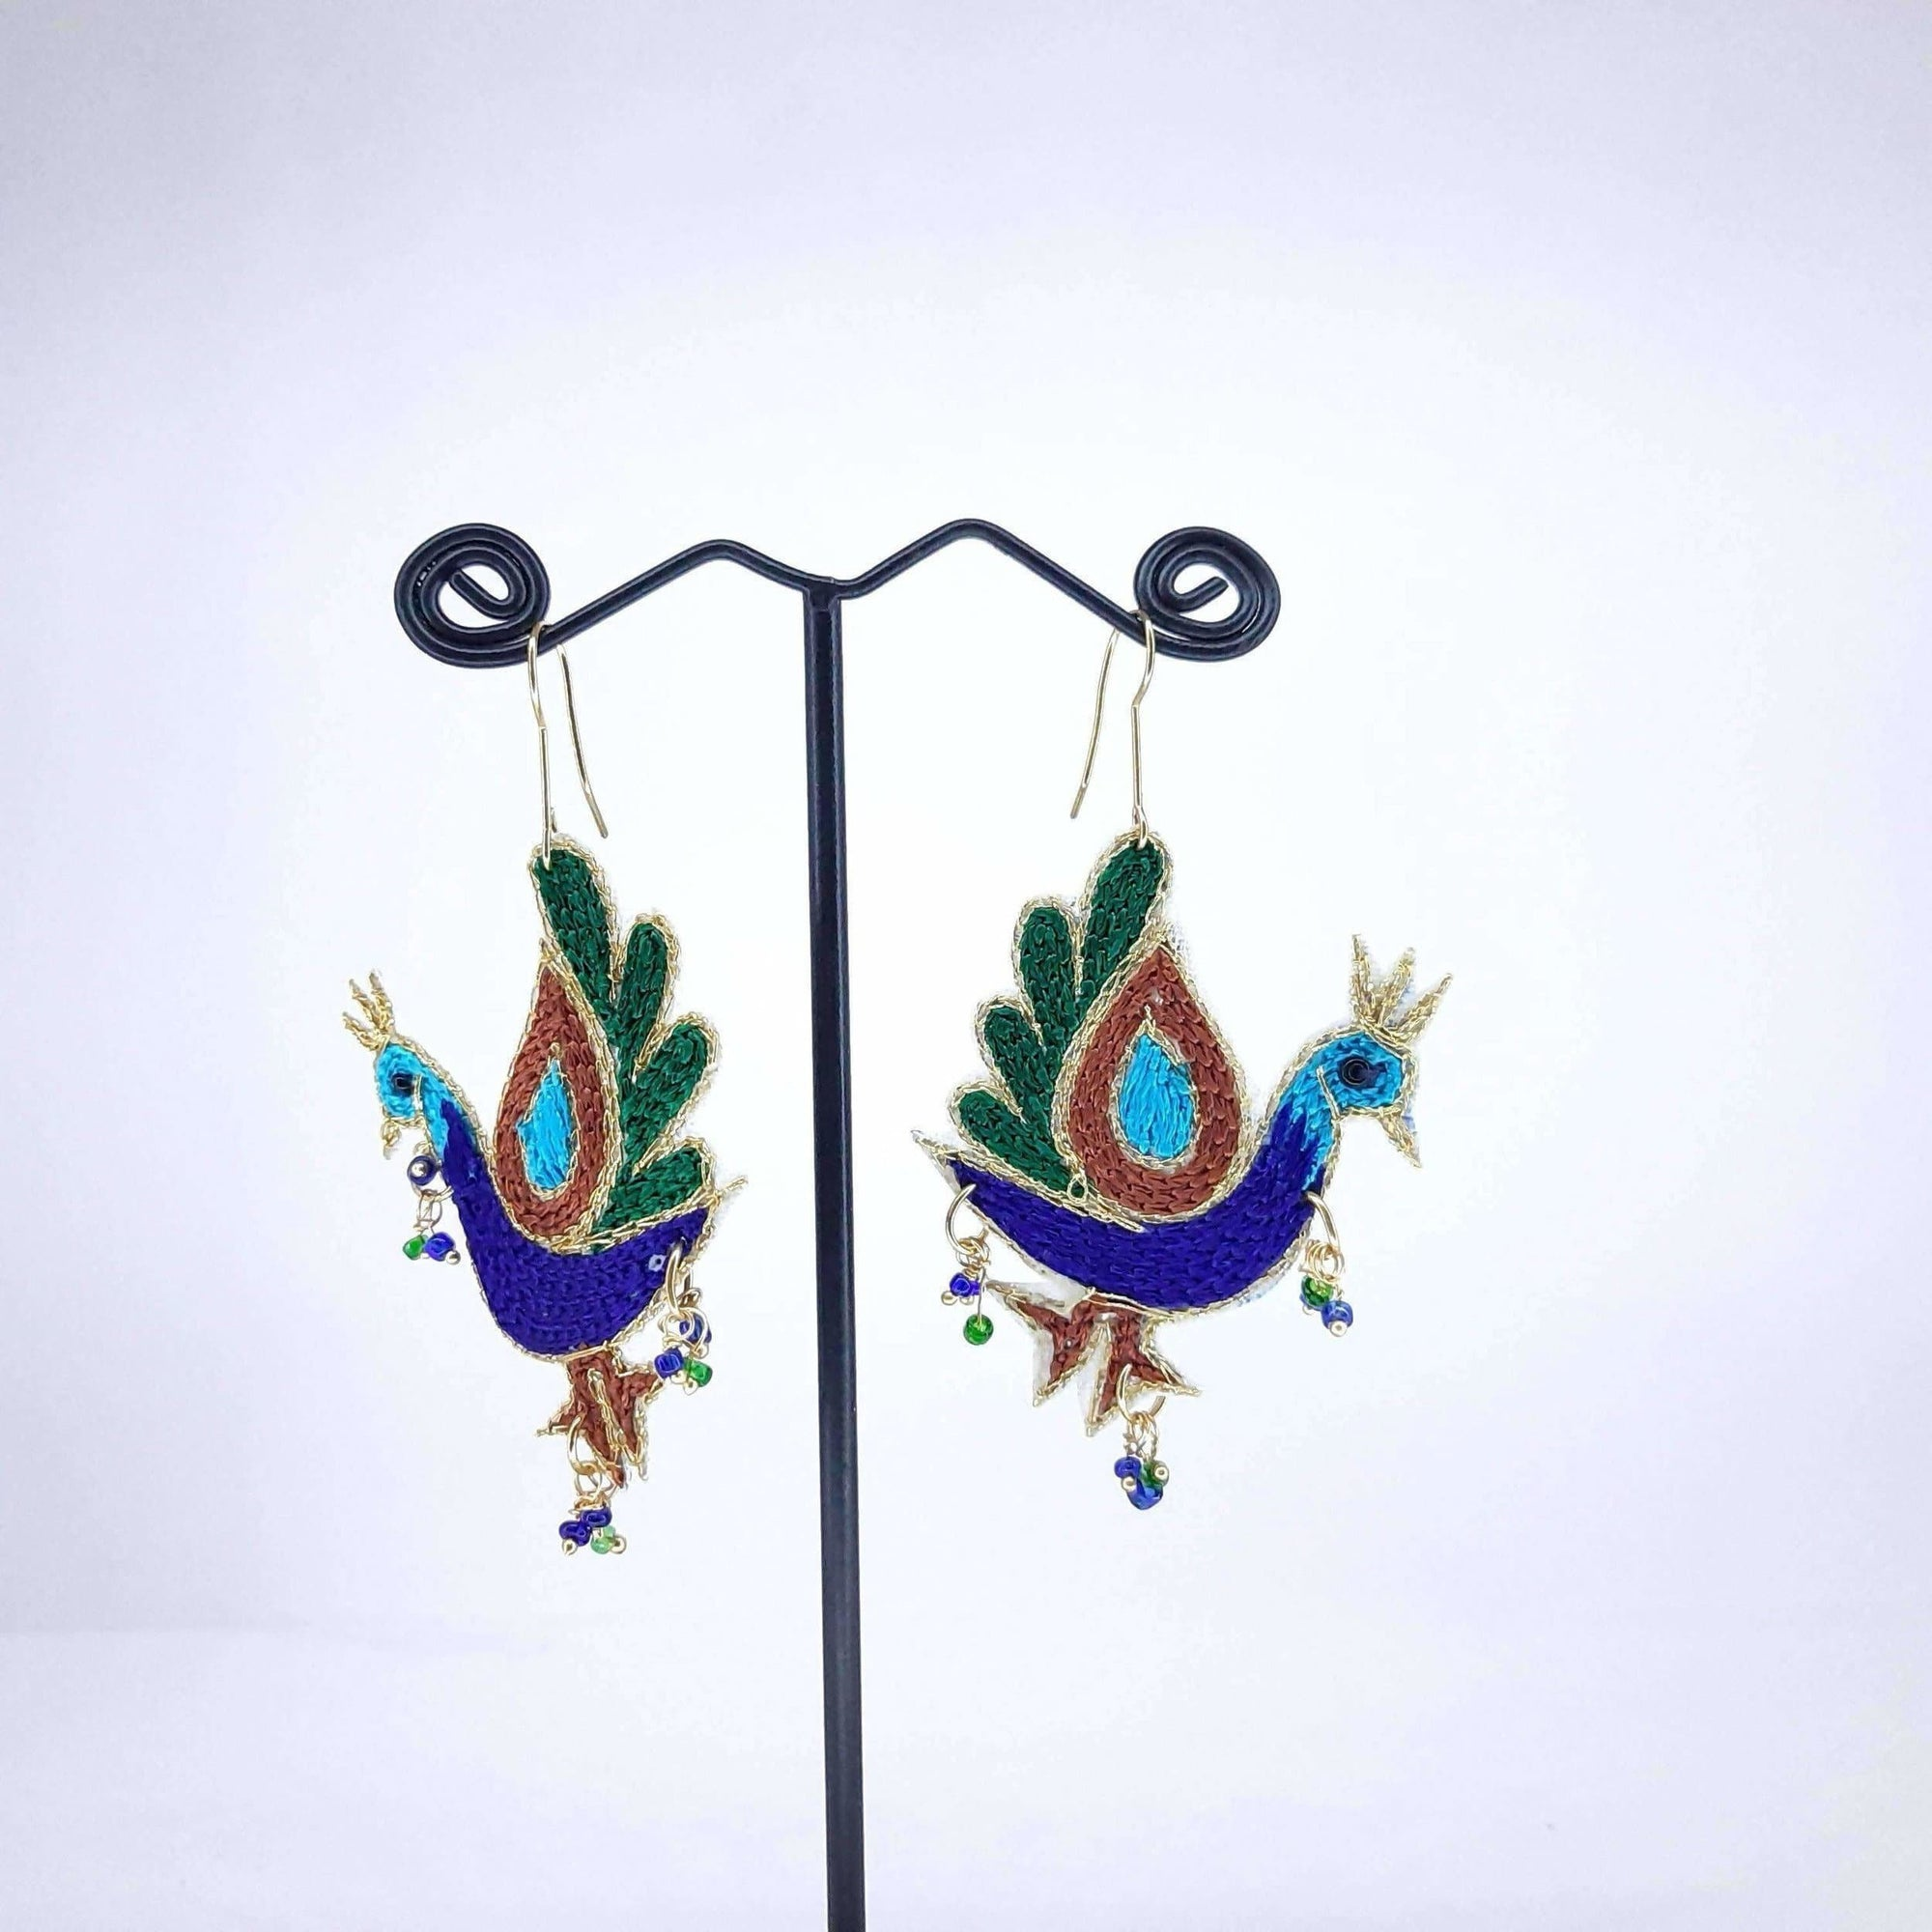 Hand Weaved Ethnic Peacock Shaped Earrings